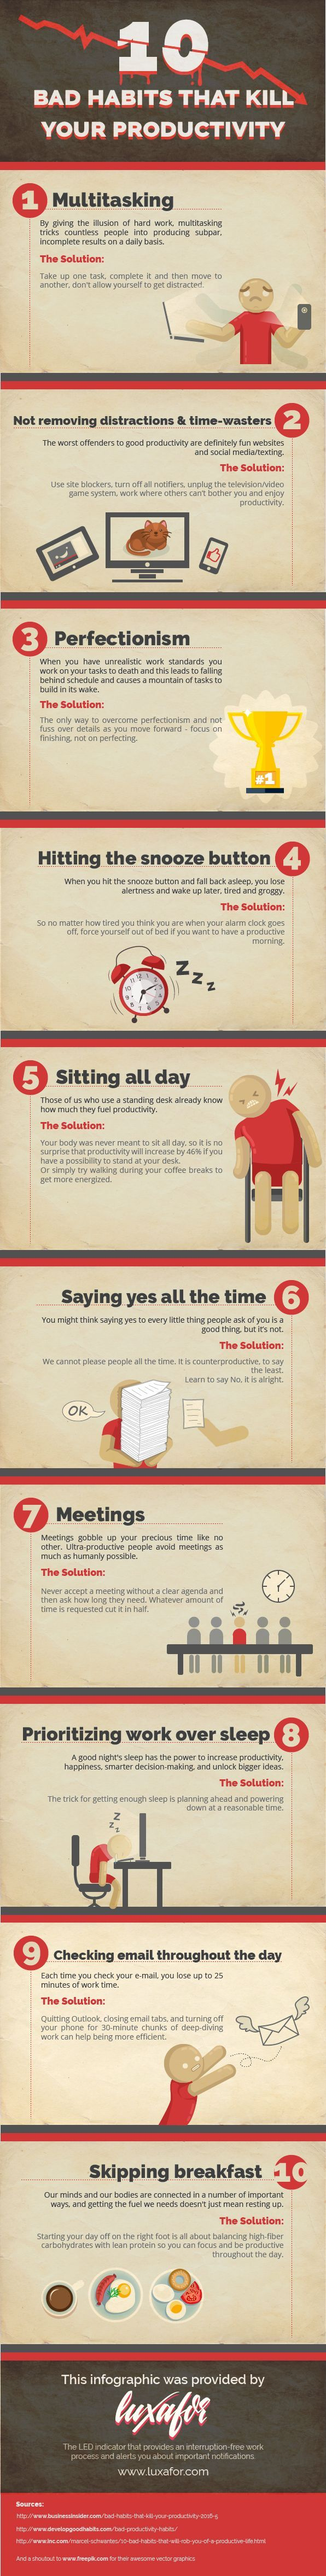 10 Bad Habits That Kill Your Productivity #Infographic #Business